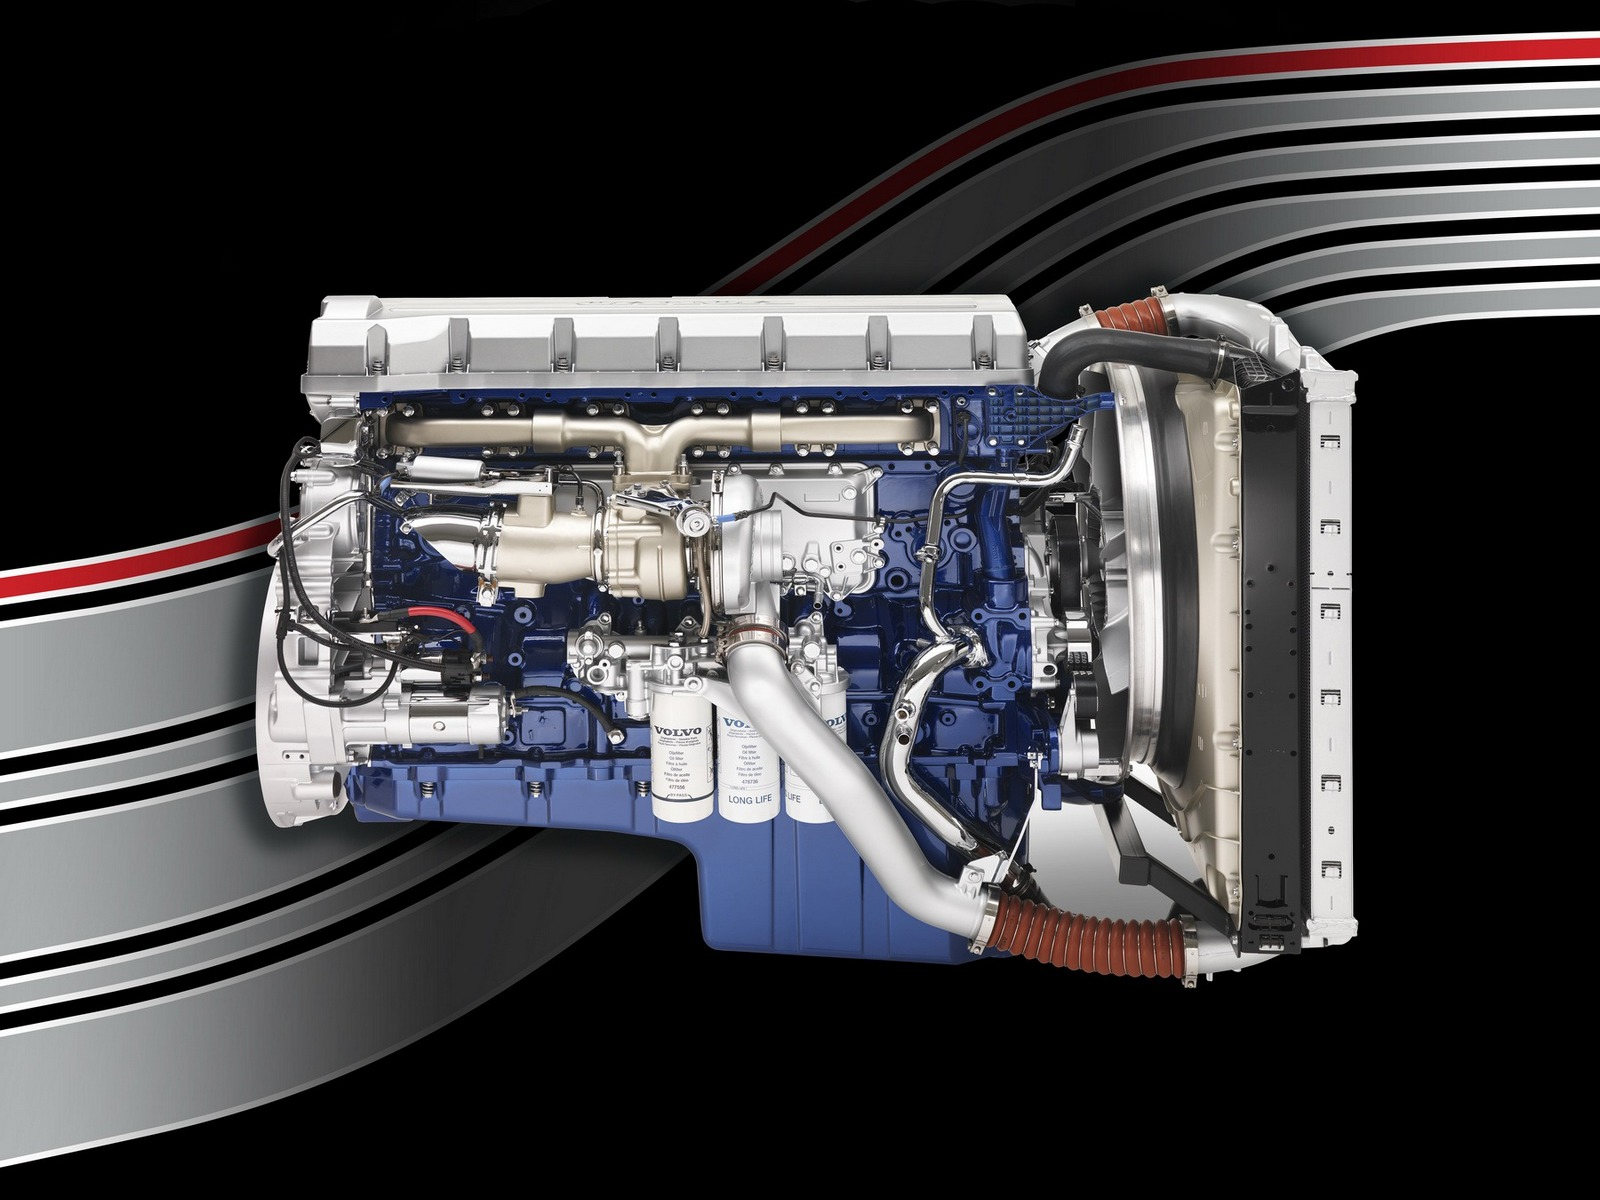 2011 Volvo FH16 750 8x4 tractor semi rig engine g wallpaper | 1600x1200 | 142669 | WallpaperUP